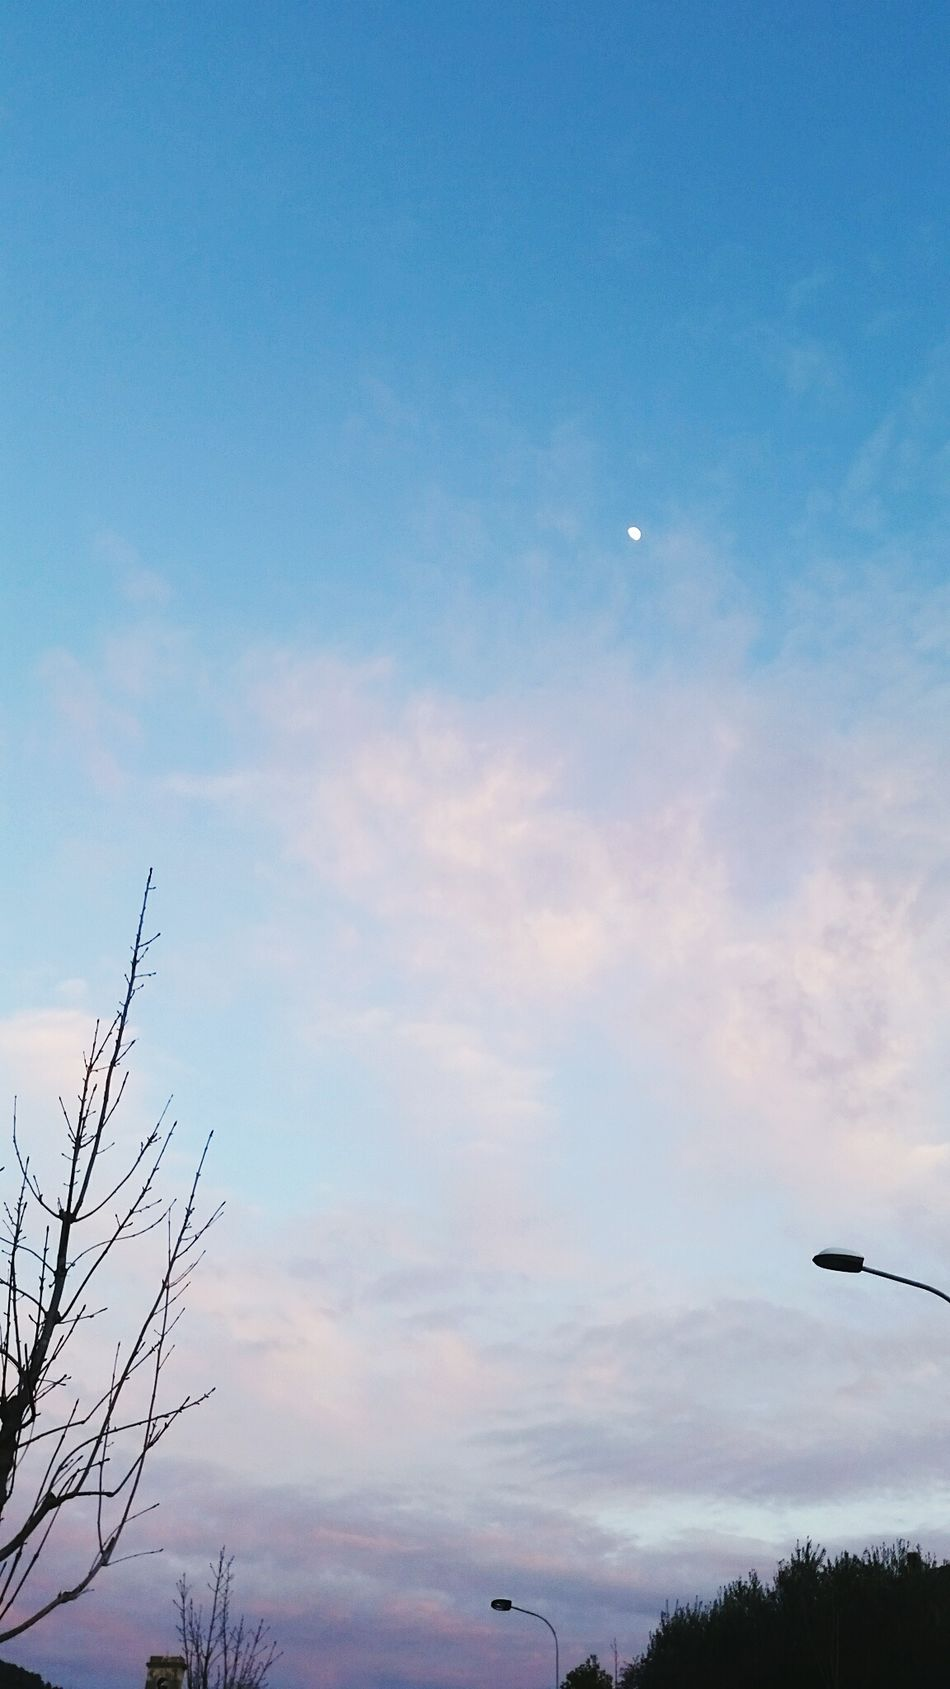 Moon Moonlight Cloud Clouds And Sky Clouds Cloudy Sky Sky And Trees Sky_collection Lantern Blue Blue Sky Light Shadow Beautiful Street Lovely View Nuvola Pink NuvoleRosa Perfect Albero Rami Lampione